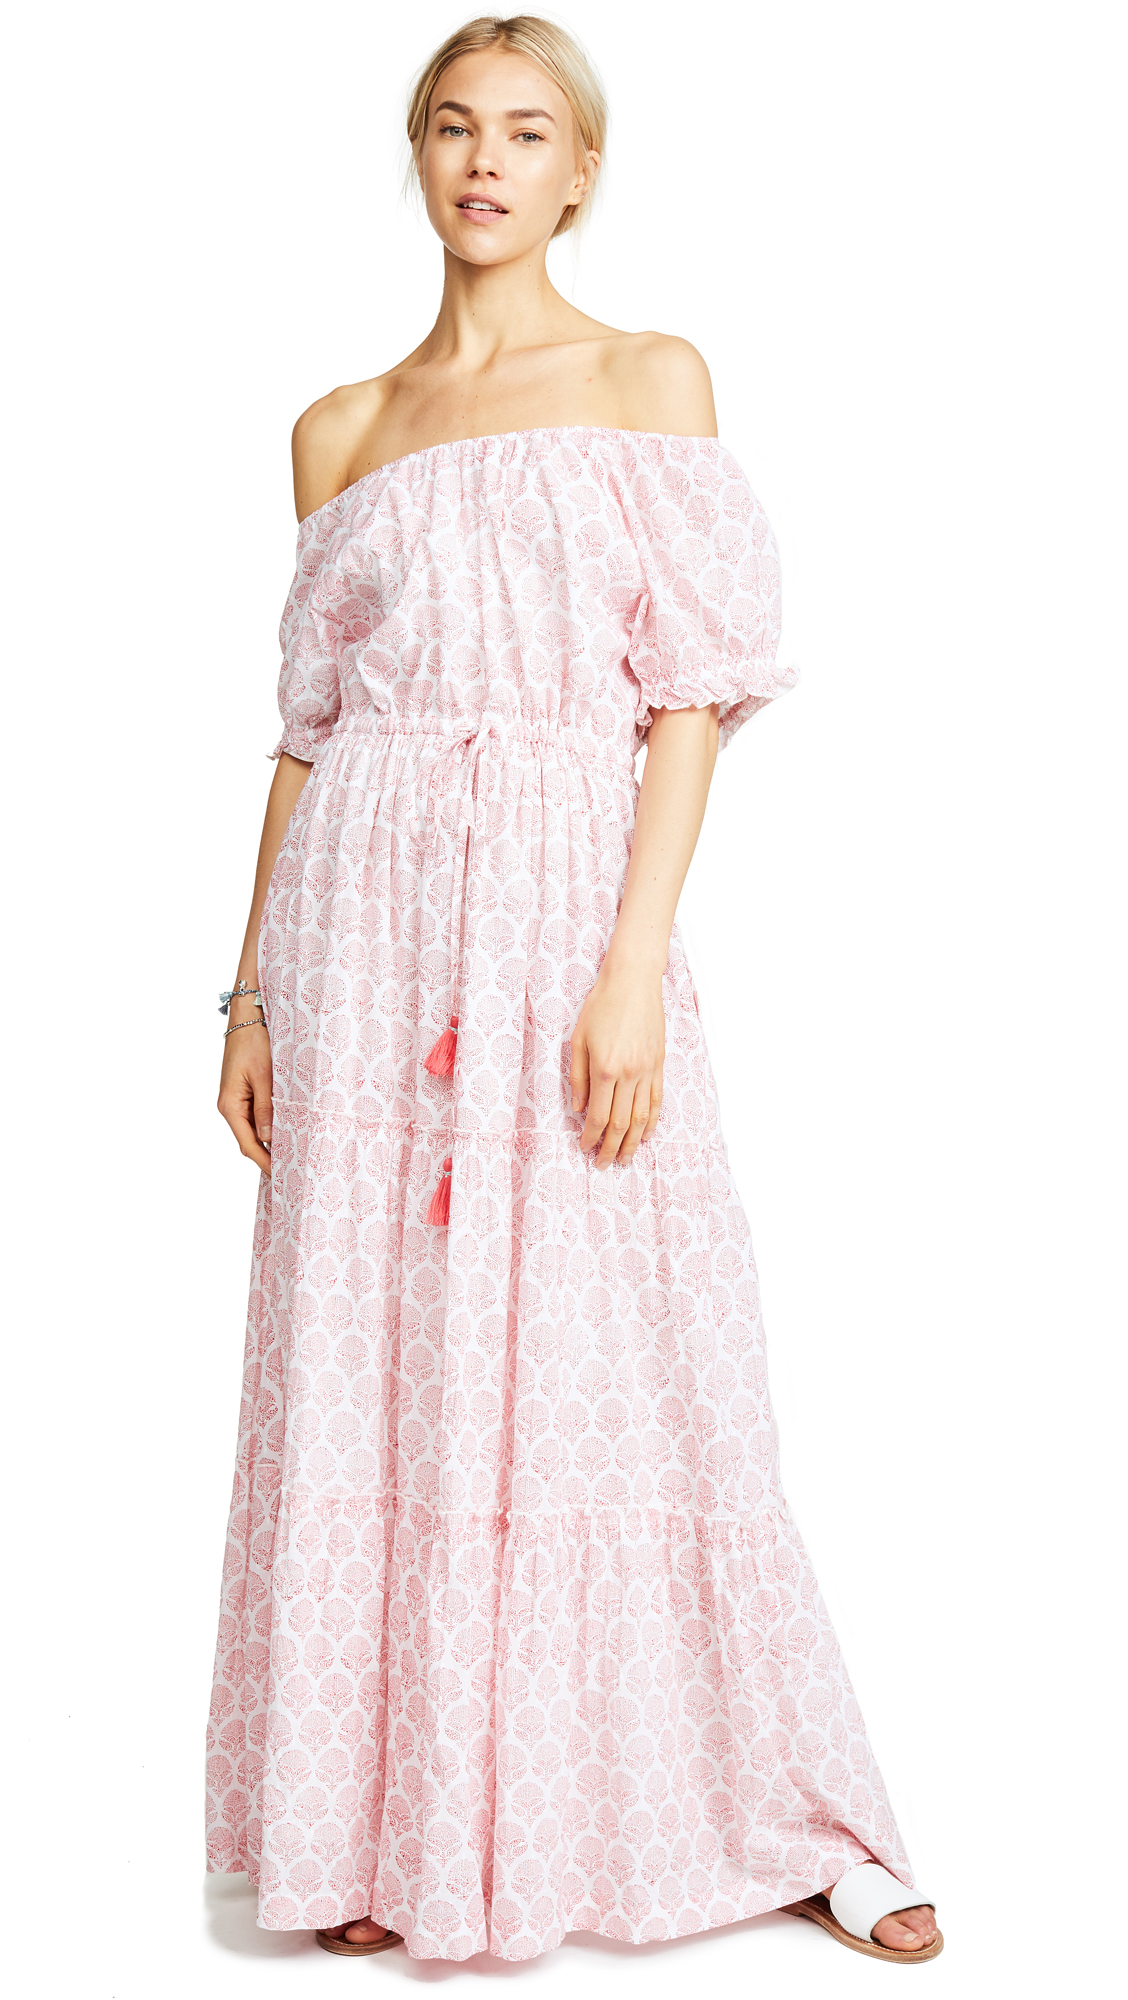 ROLLER RABBIT Rosemary Abha Dress in Coral